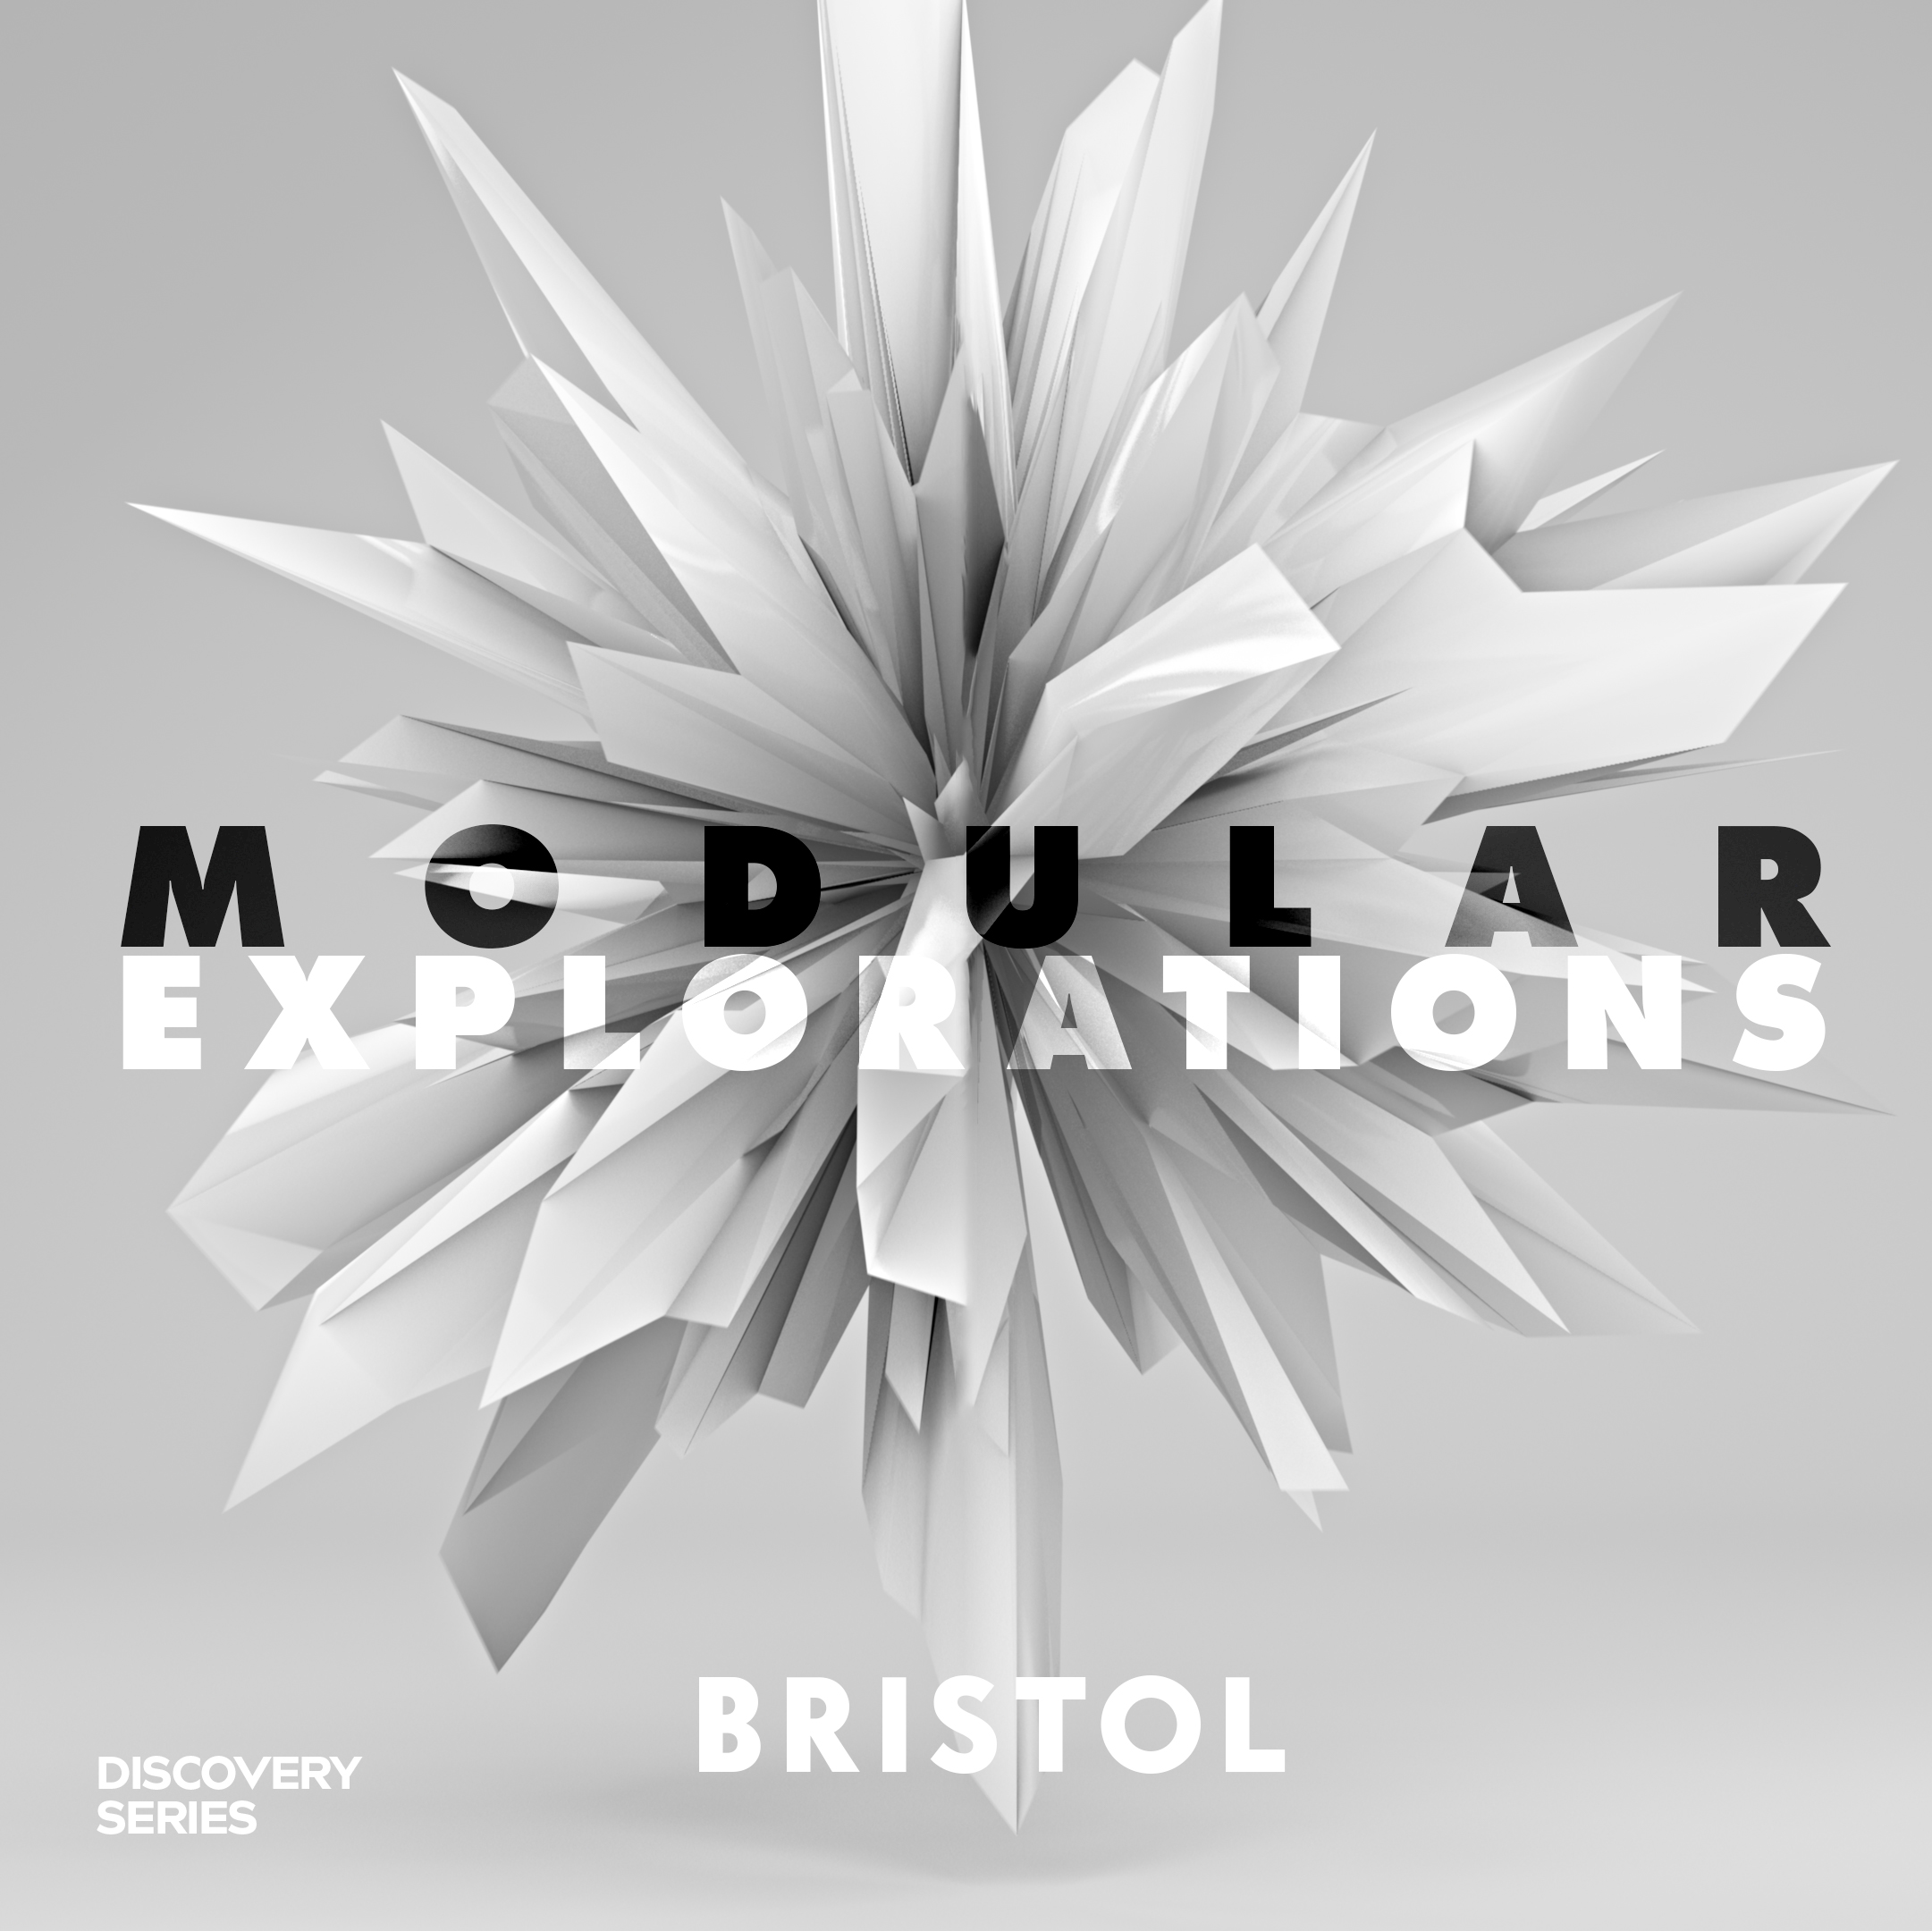 Modular Explorations: Bristol features cinematic alien arcades and cities, deserted crystalline caverns, vast hives of digital insects, distressed metal impacts and abstract user interface sounds. -